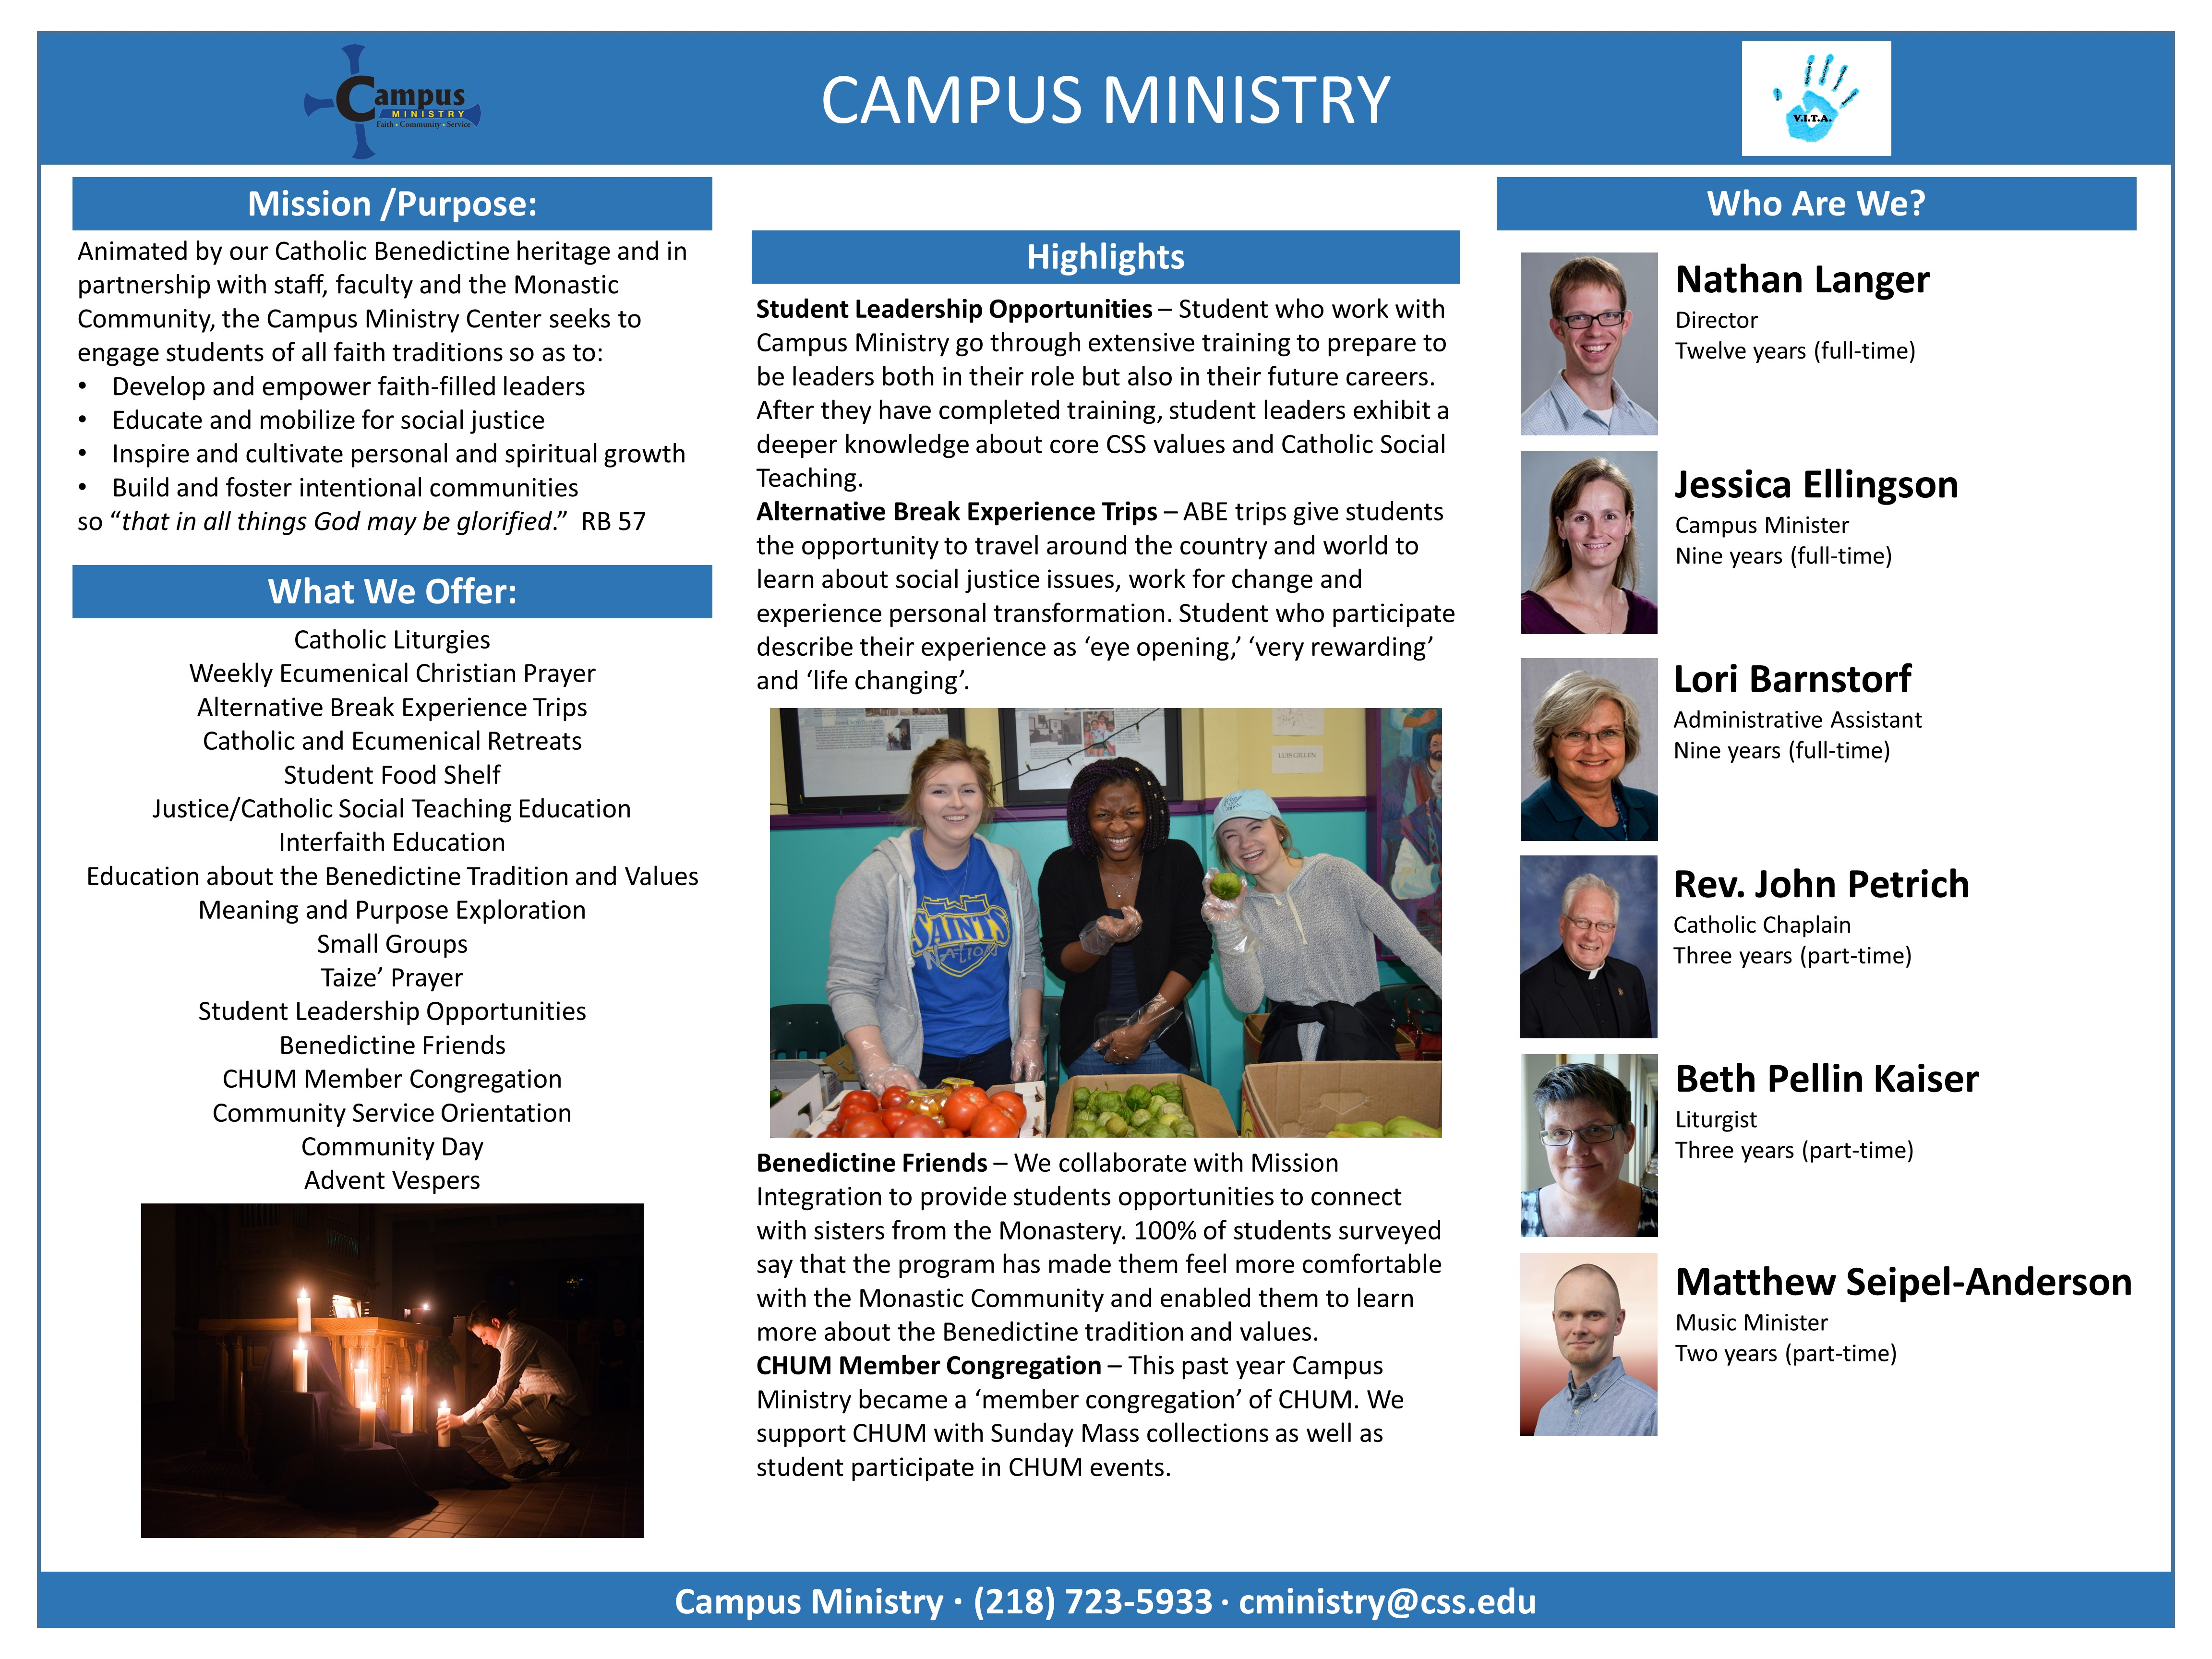 Campus Ministry poster